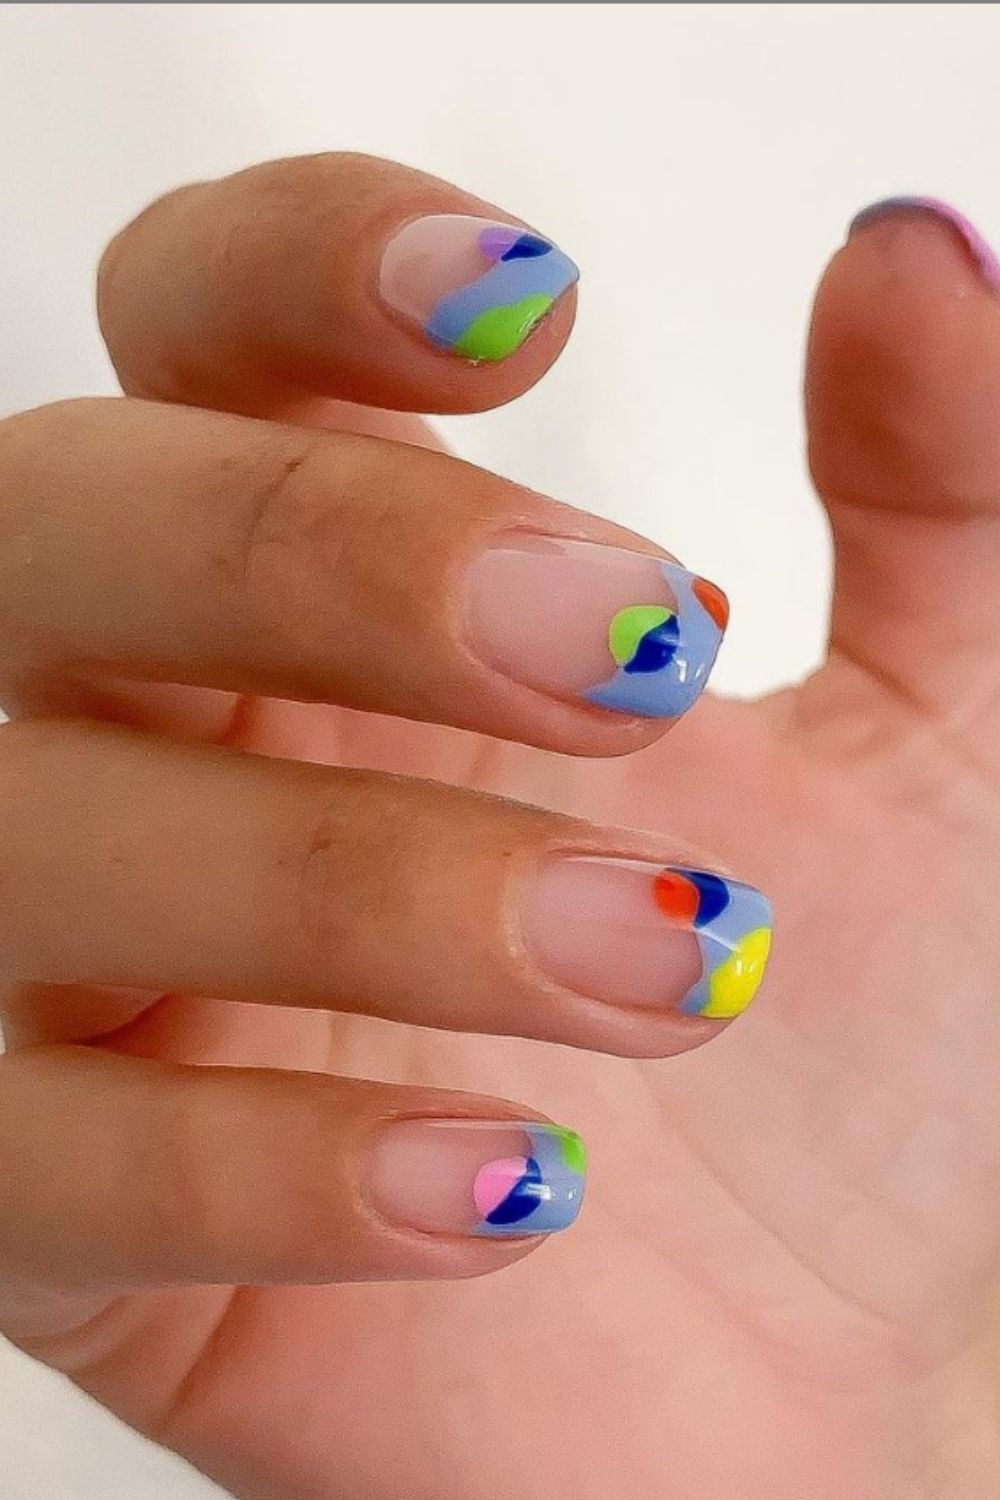 Bright Summer Acrylic Nail Ideas You'll Love To Try 2021!